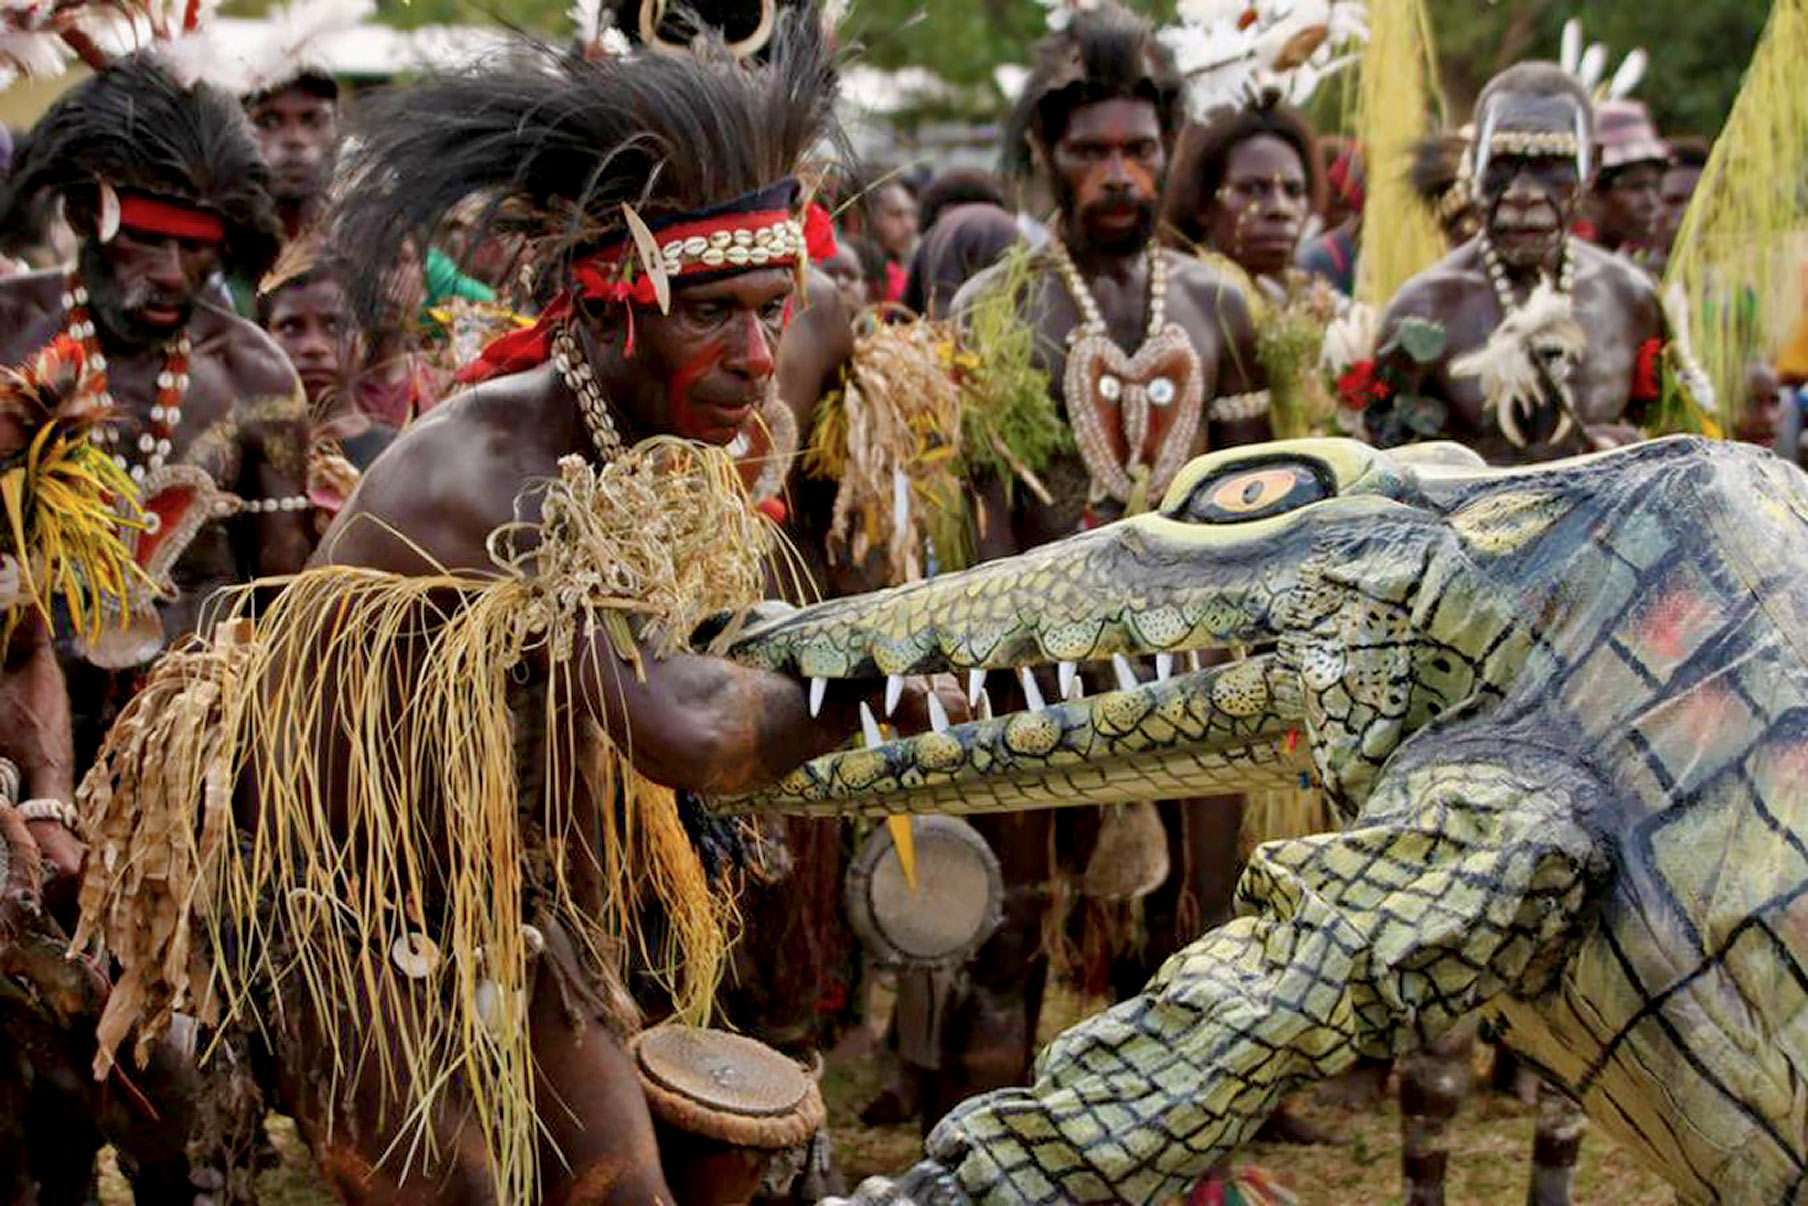 Crocodile men of Papua New Guinea.